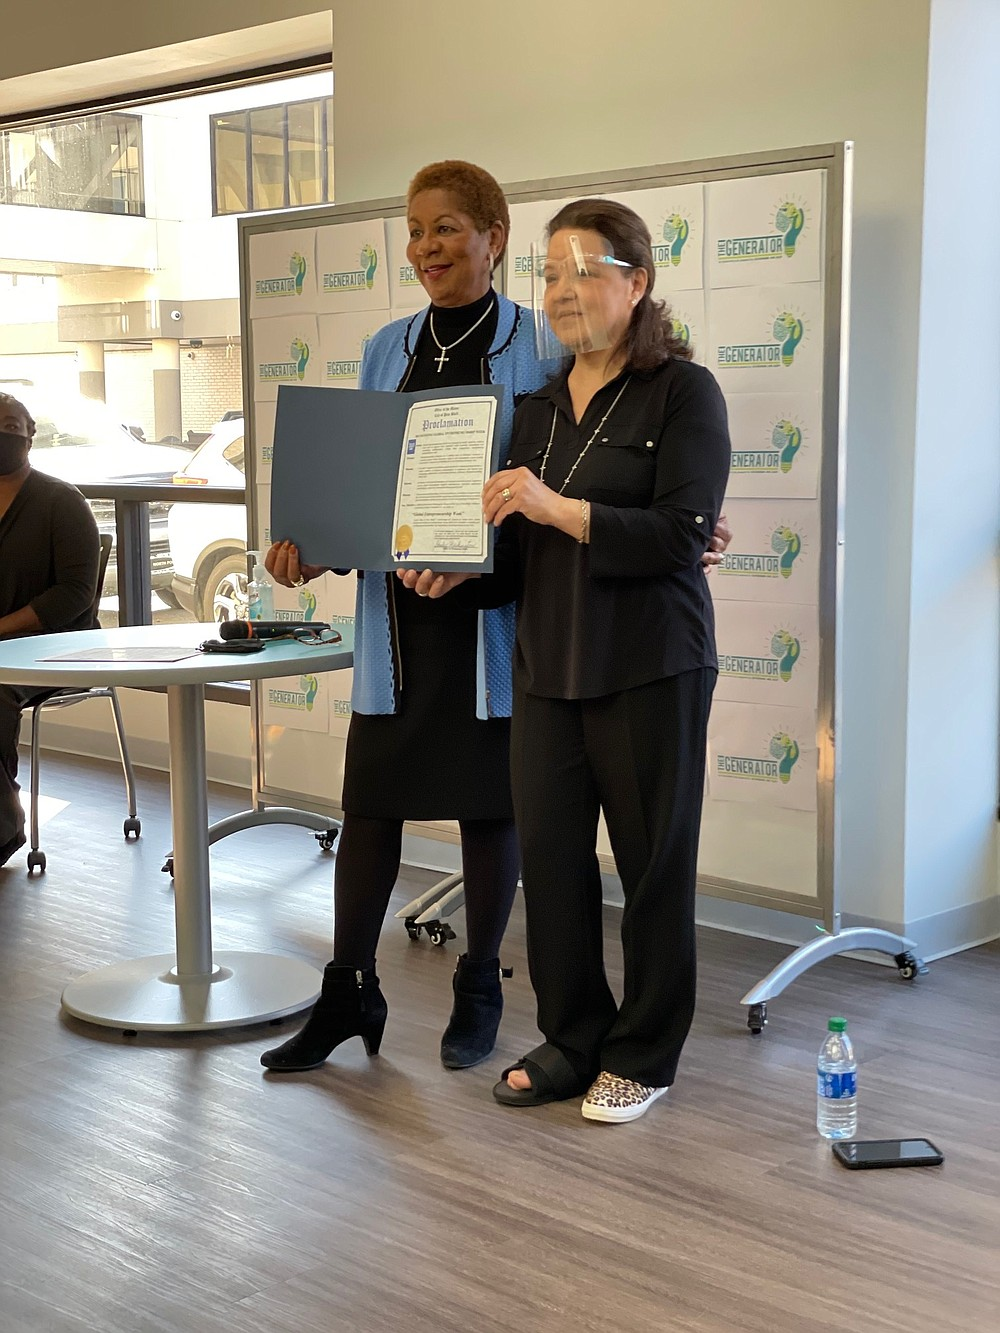 Mayor Shirley Washington, left, stopped by during Global Entrepreneurship activities at The Generator during the week and read a proclamation taking note of the week and the work that The Generator is doing. Mildred Franco, director of The Generator, is shown holding the proclamation. (Submitted photo)